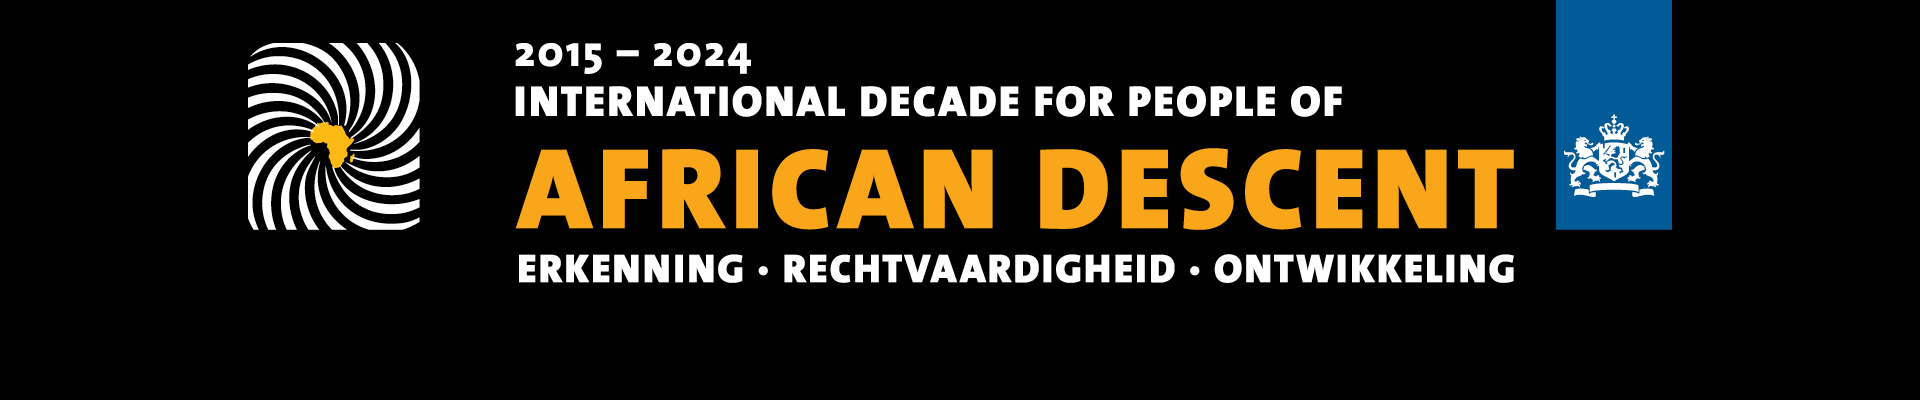 International Decade for People of African Descent